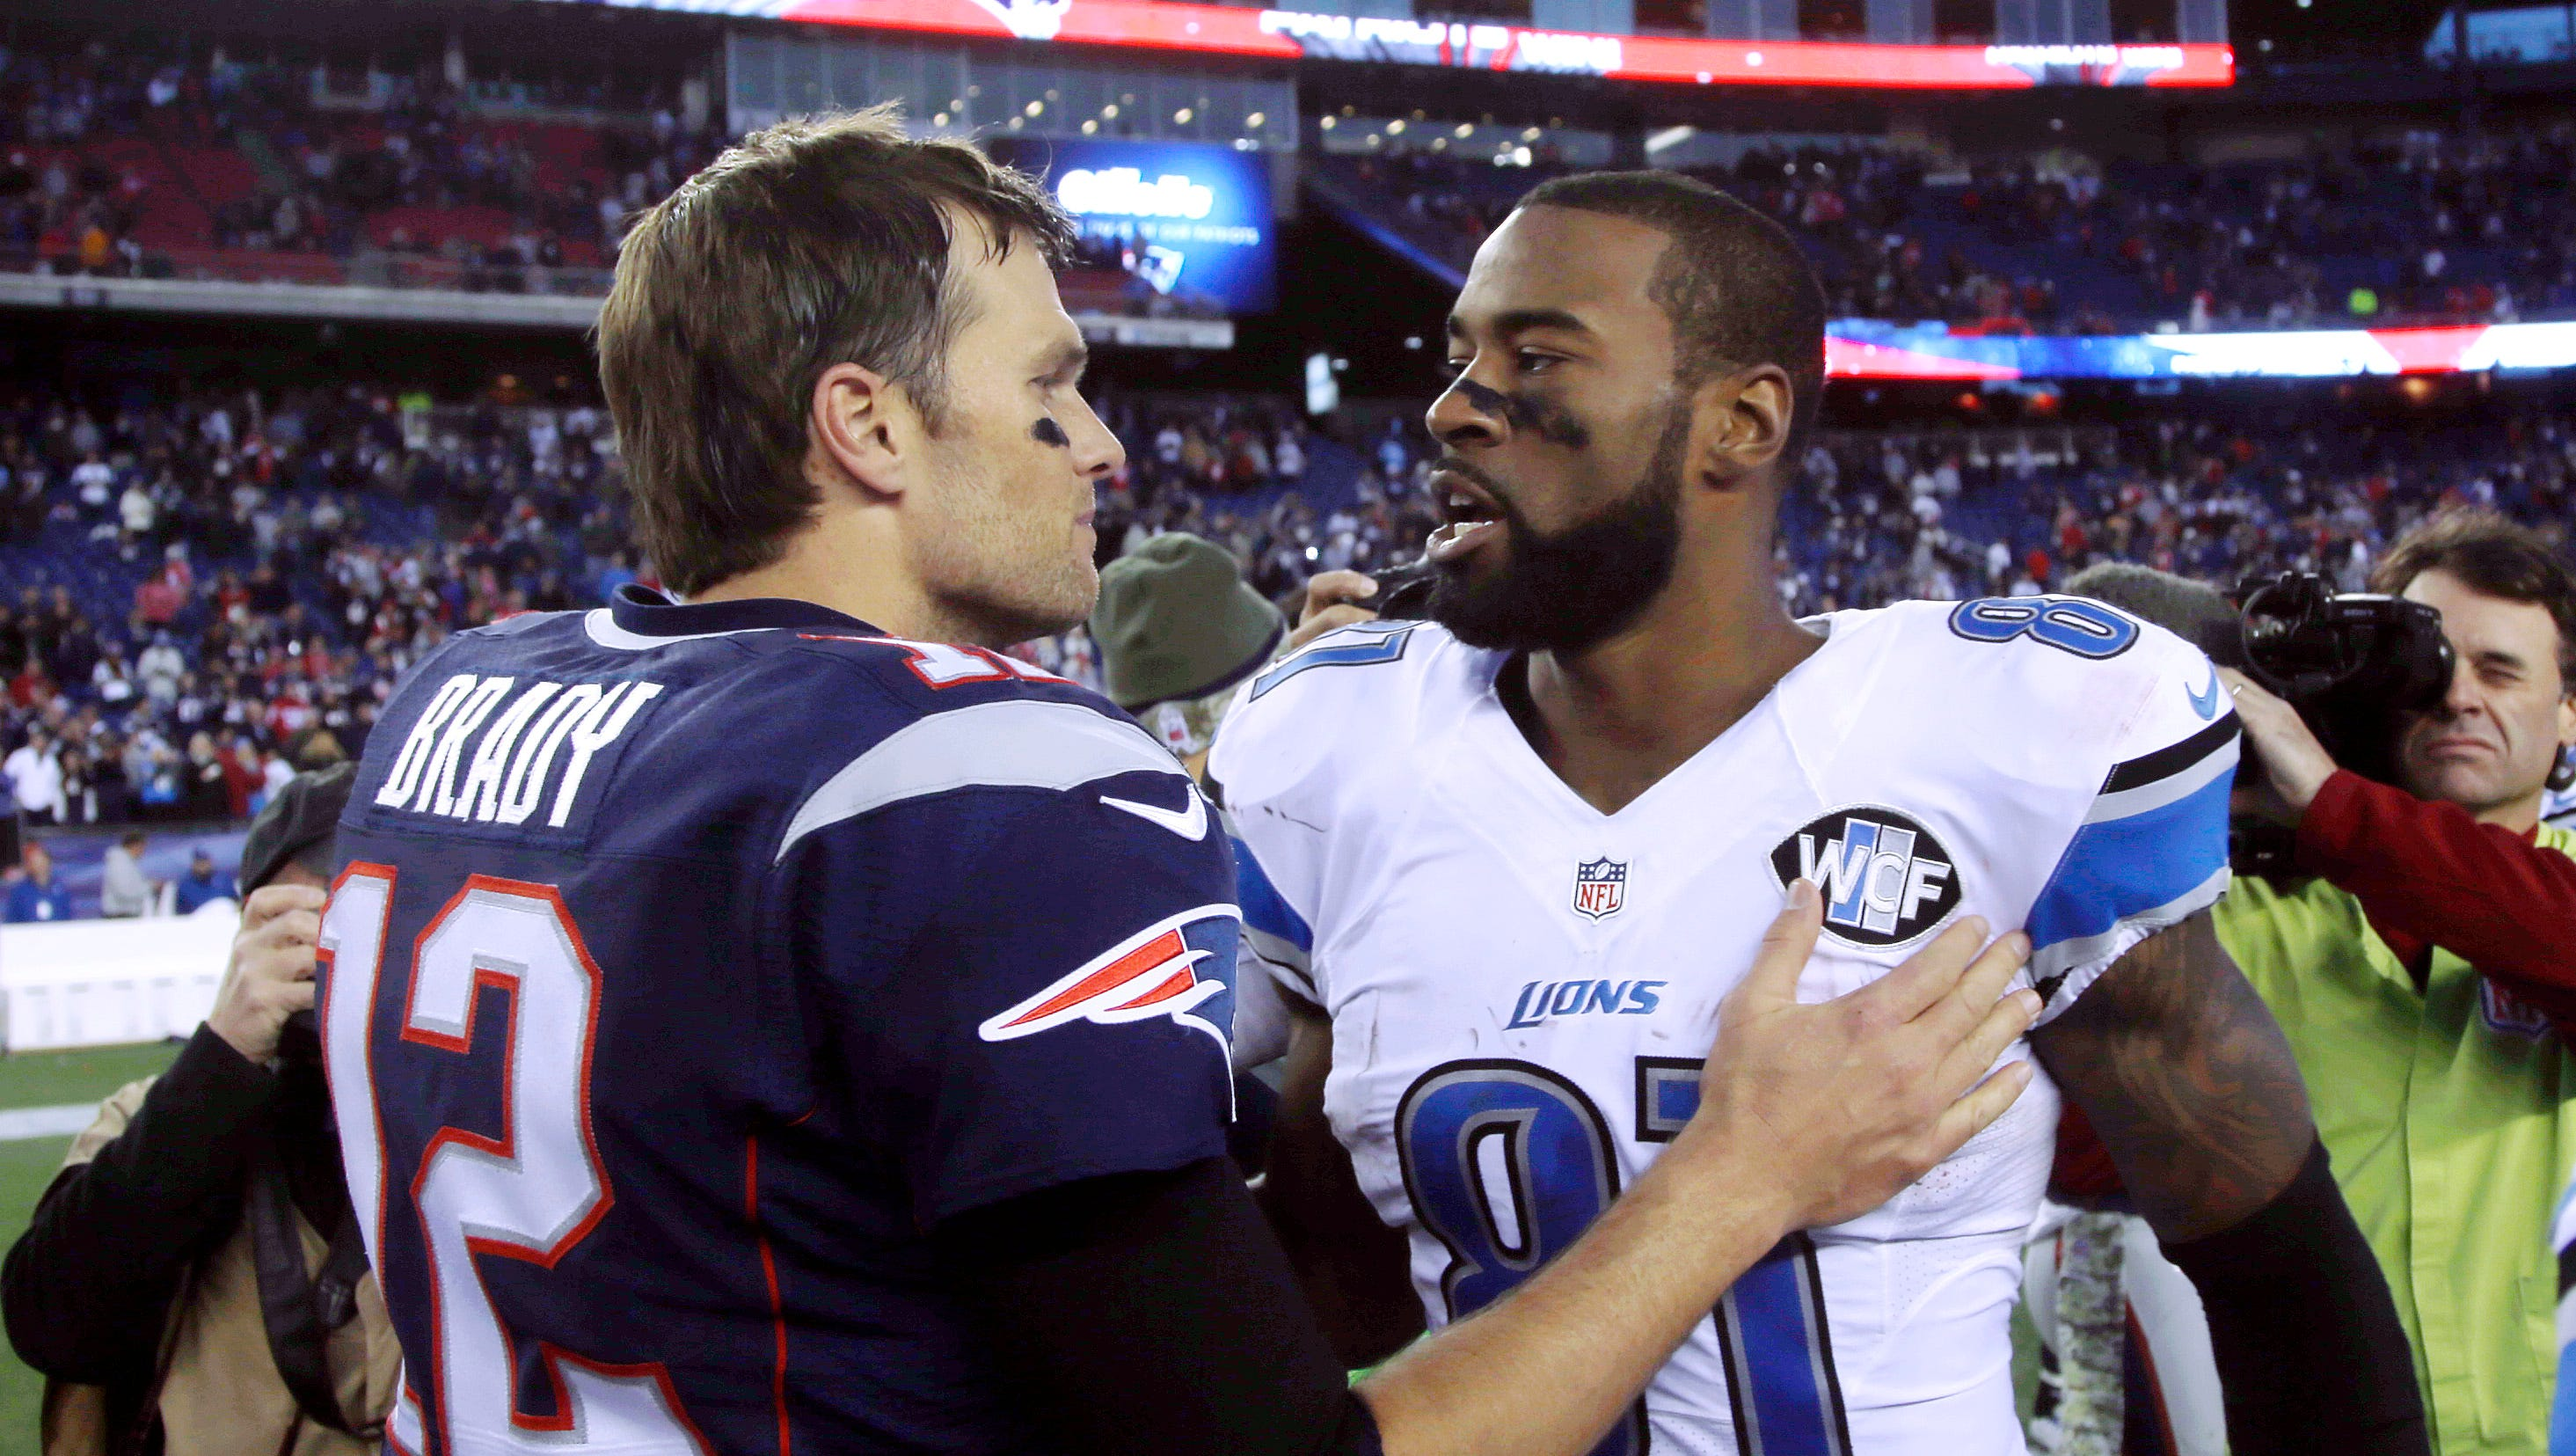 Should the Detroit Lions trade Megatron to the New England Patriots?